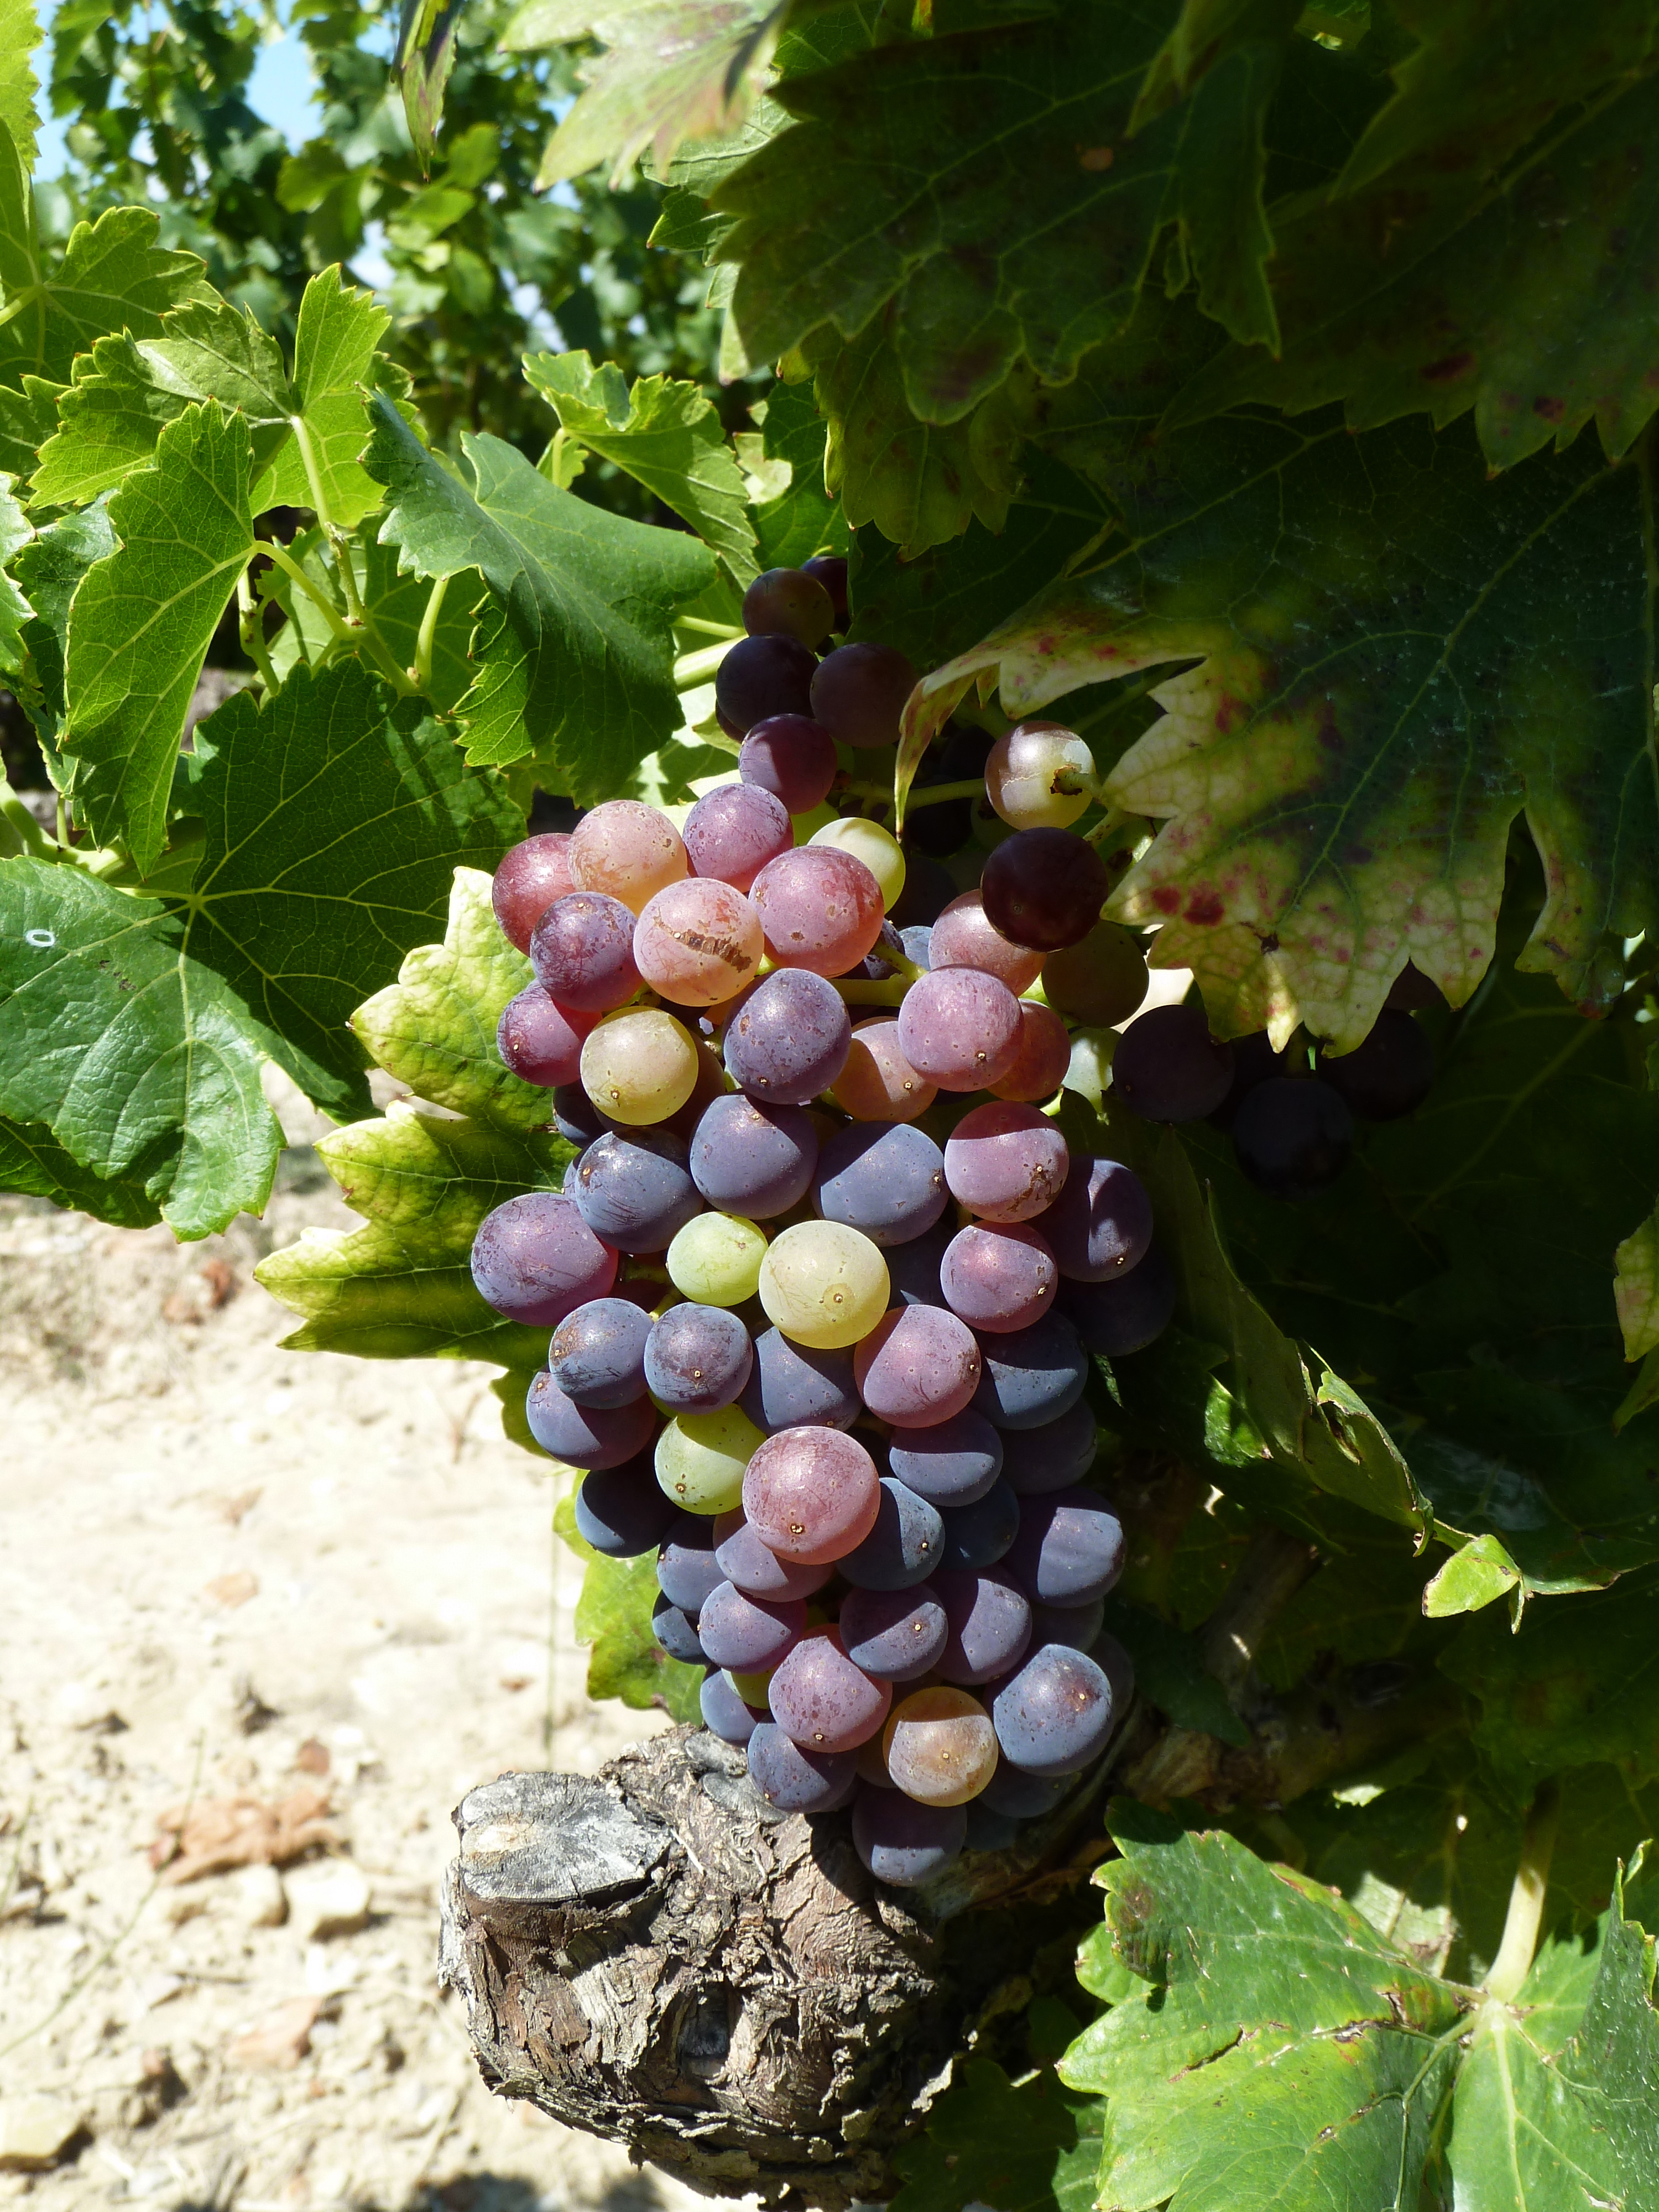 Veraison is the time of year when the grape kermels swell and turn green to bright red for black grapes.